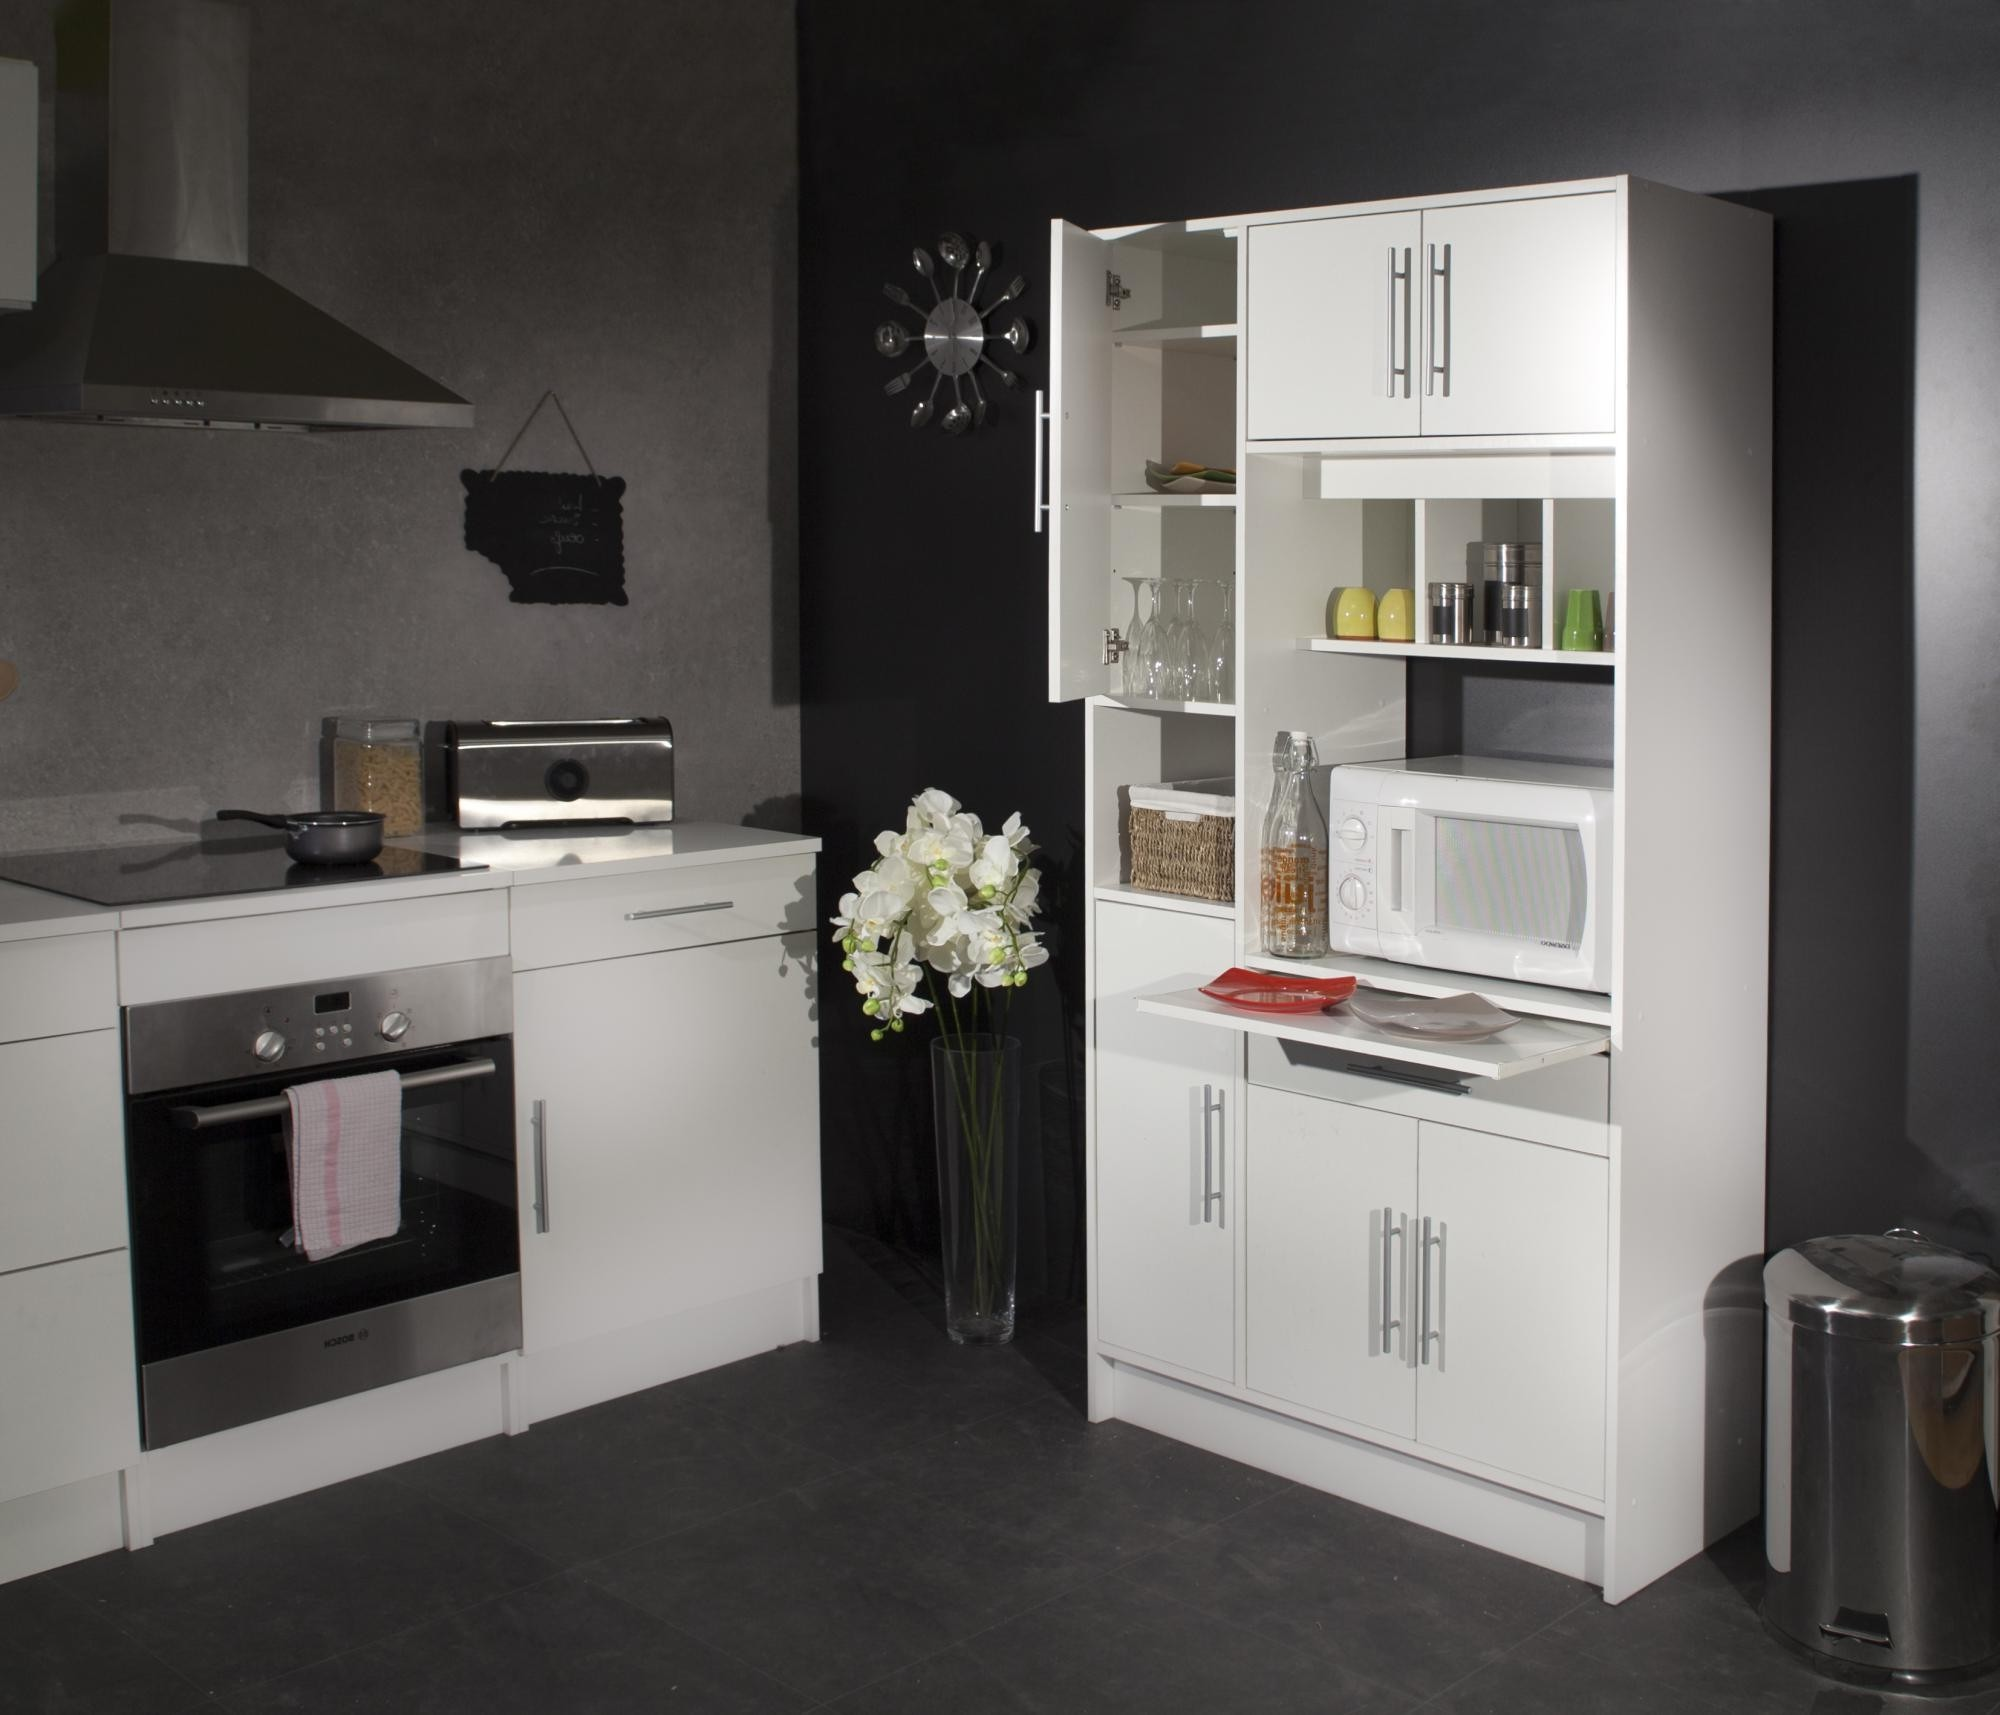 meuble appoint cuisine but cuisine id es de d coration. Black Bedroom Furniture Sets. Home Design Ideas